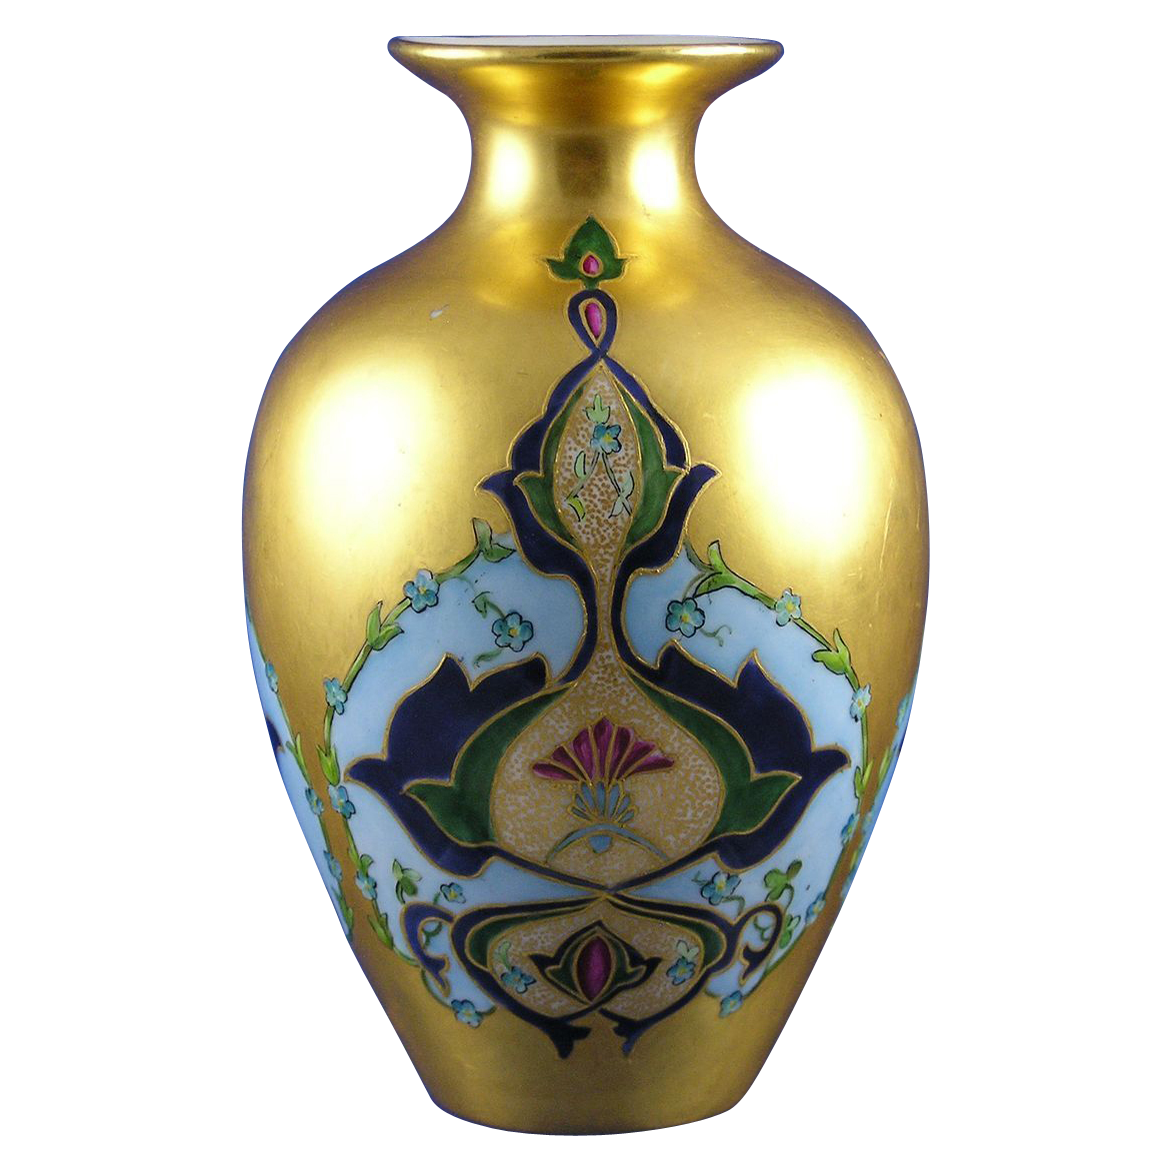 art nouveau gold floral motif vase signed m l leary dated 1901 from darkflowers on ruby lane. Black Bedroom Furniture Sets. Home Design Ideas